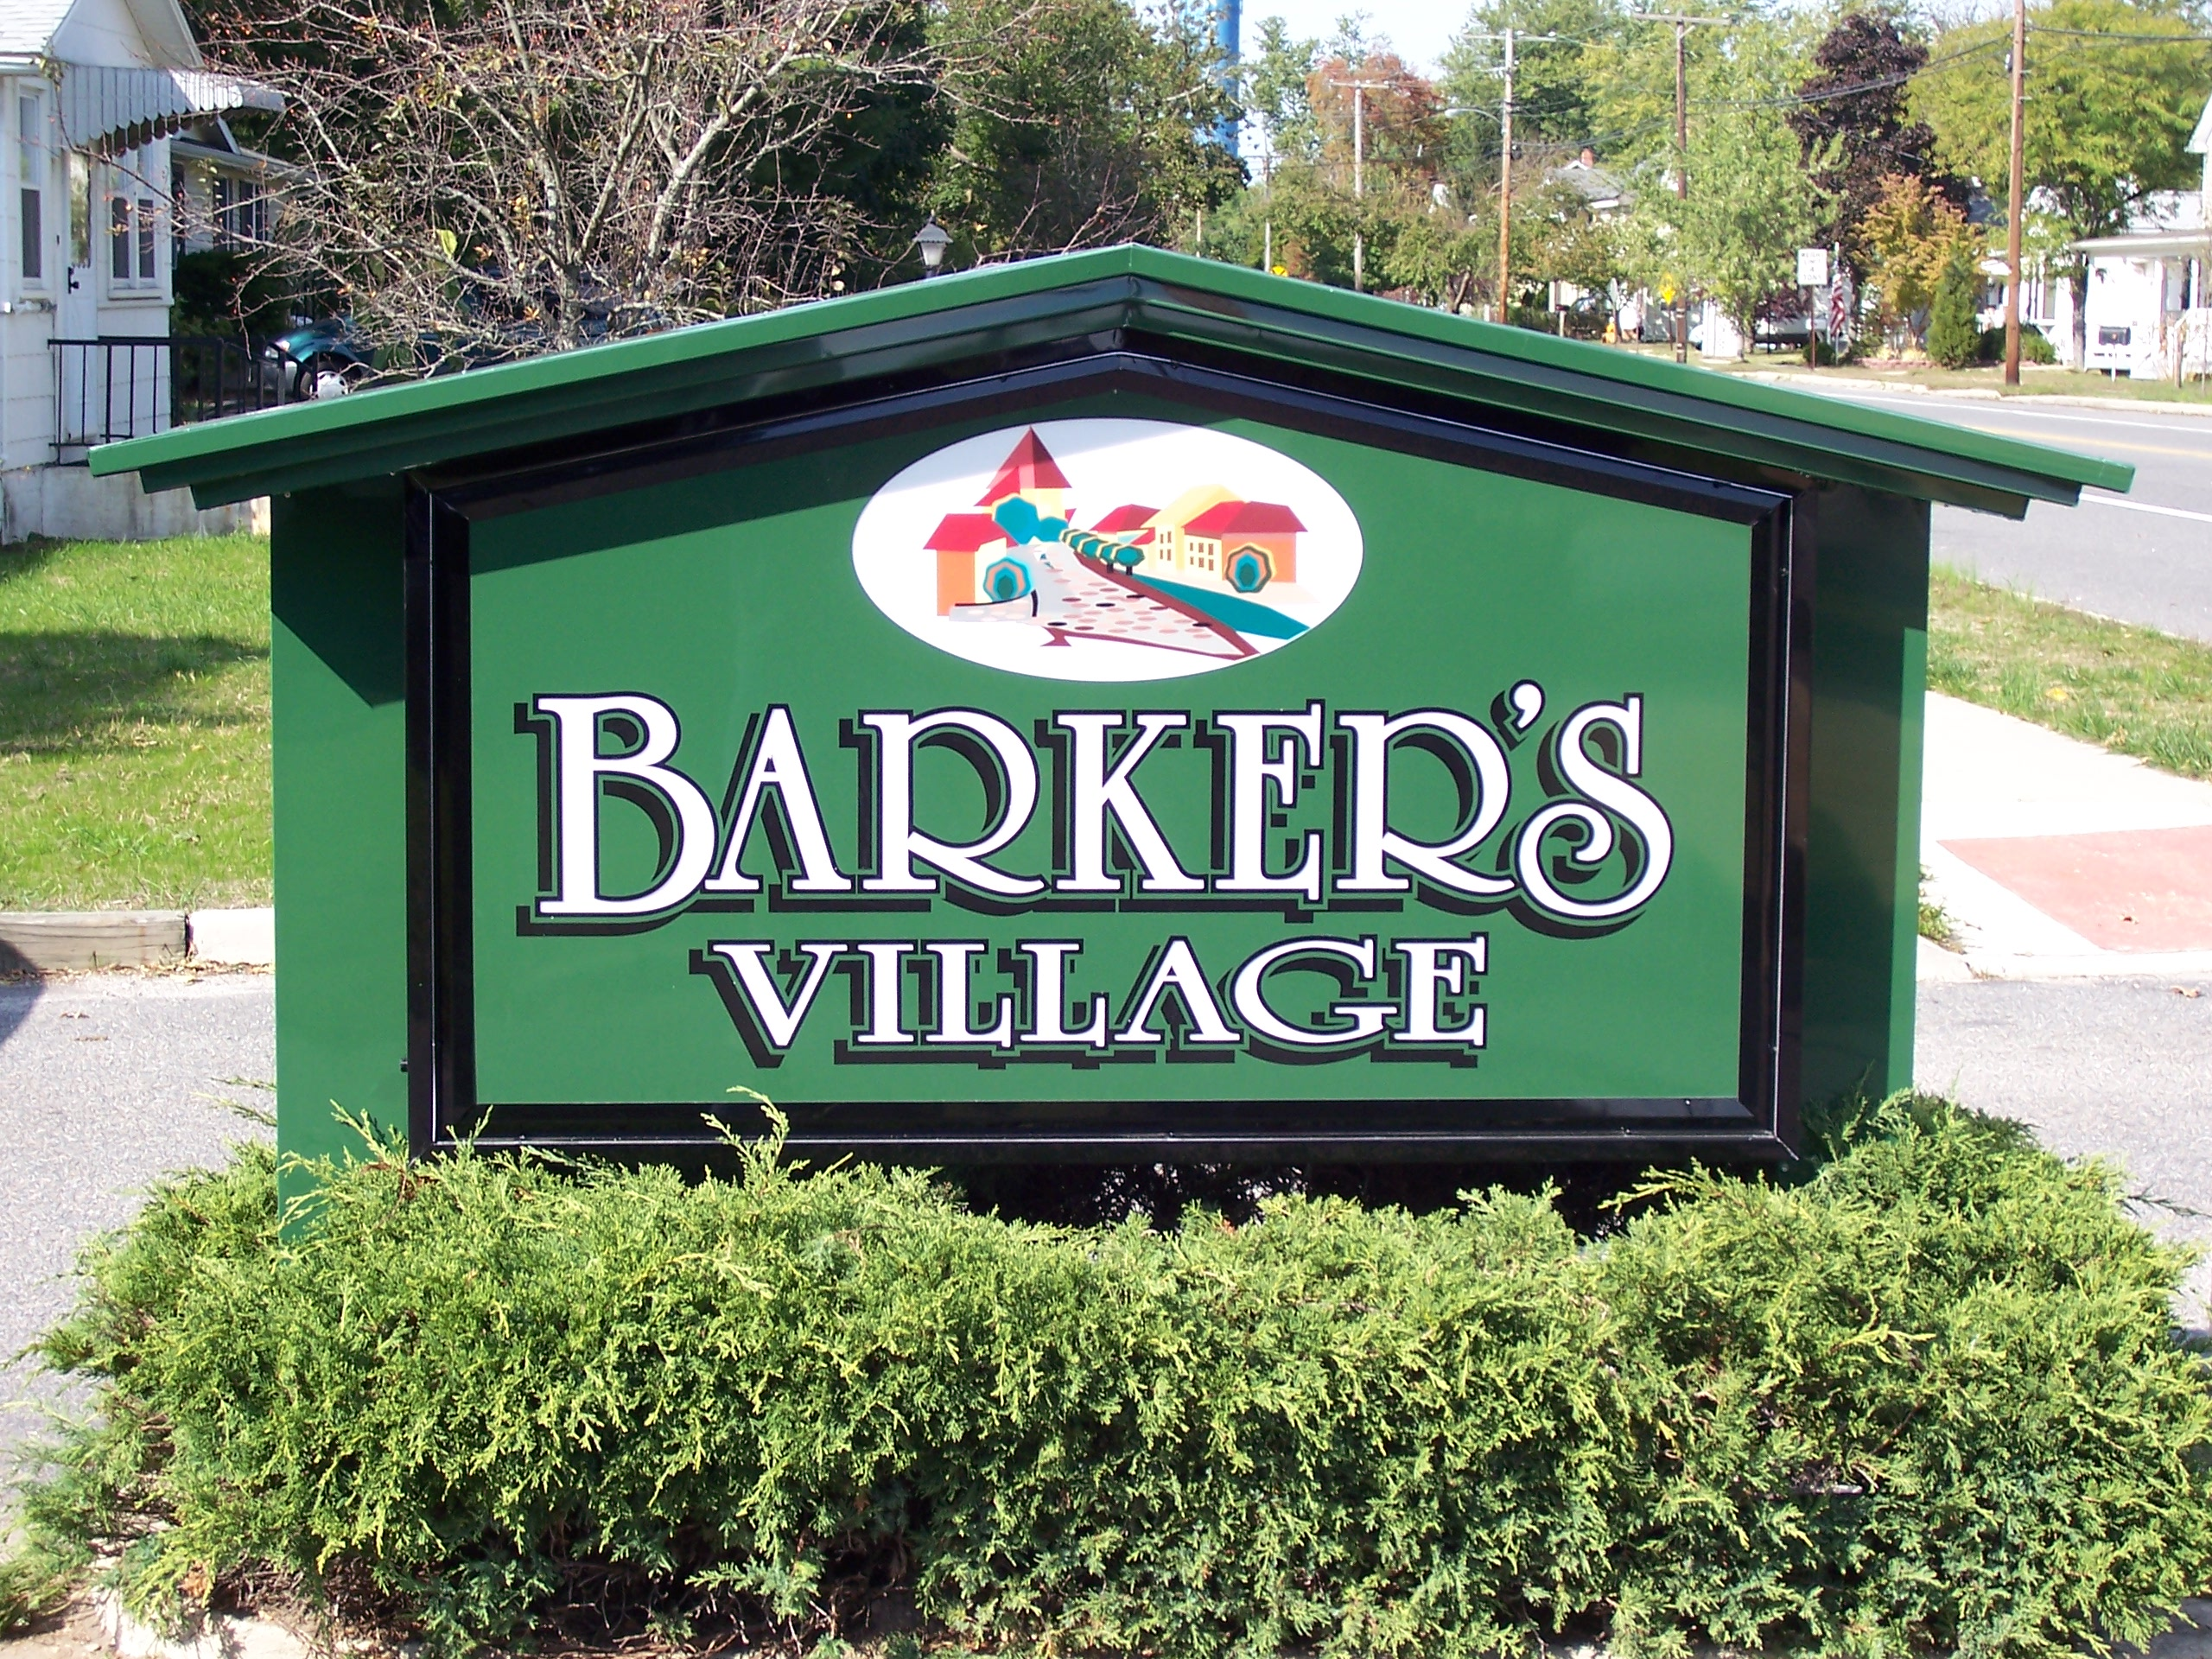 Barkers village day